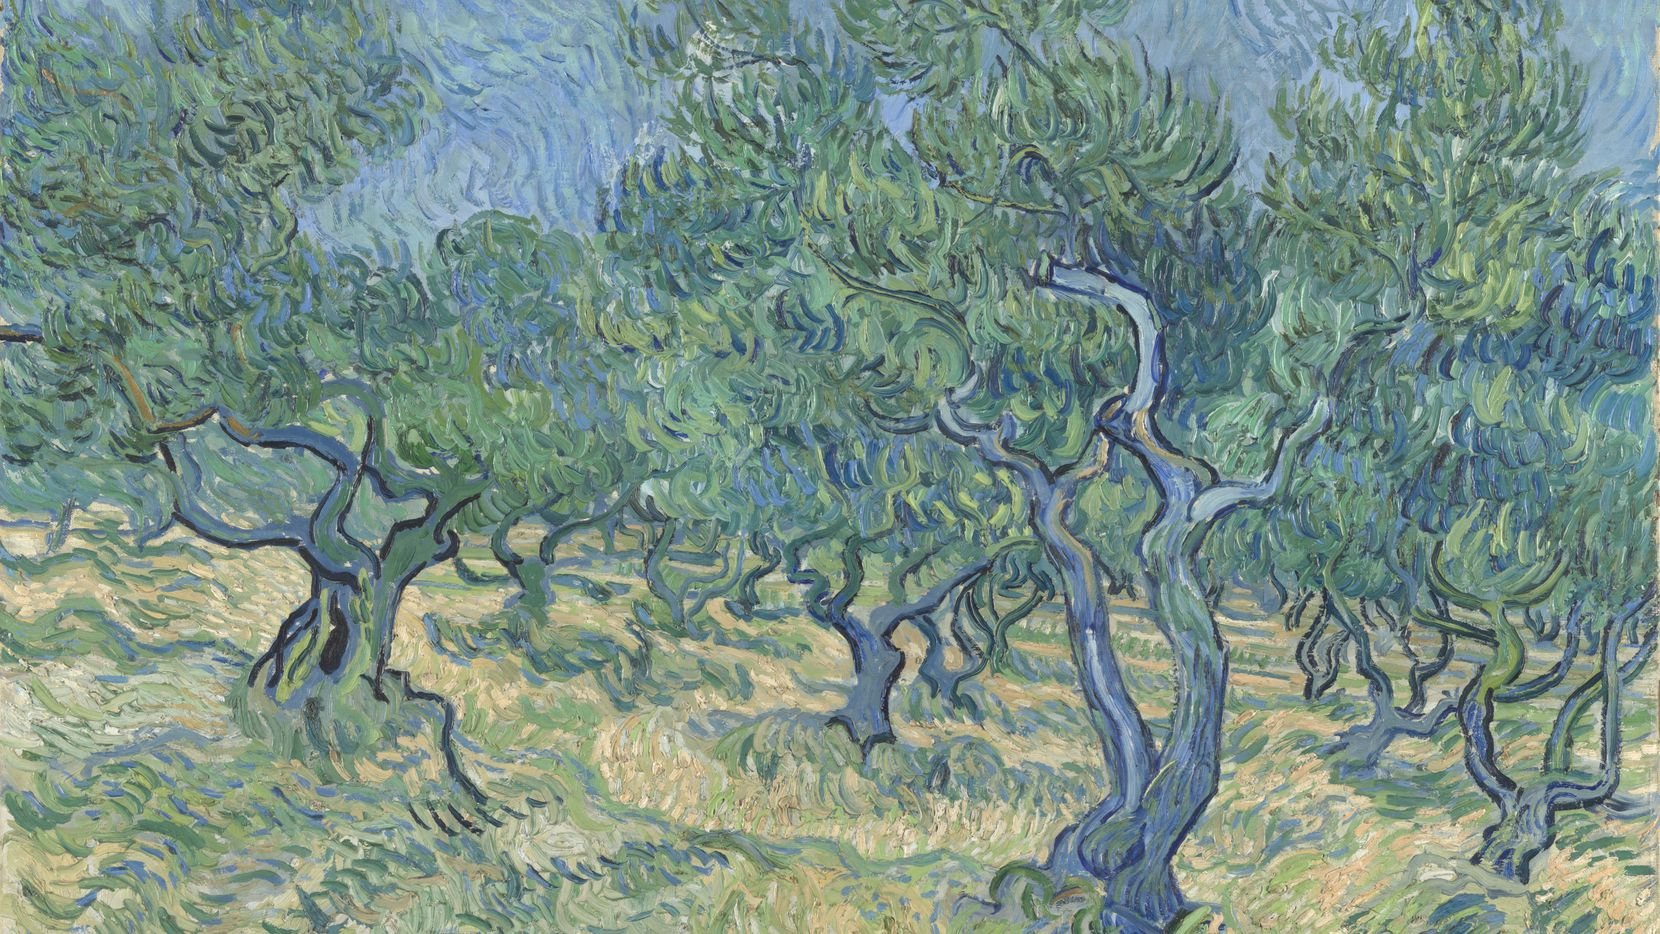 """Vincent van Gogh, Olive Grove, July 1889, oil on canvas. The work is part of the exhibit """"Van Gogh and the Olive Groves,"""" on view at the Dallas Museum of Art from Oct. 17, 2021, through Feb. 6, 2022."""